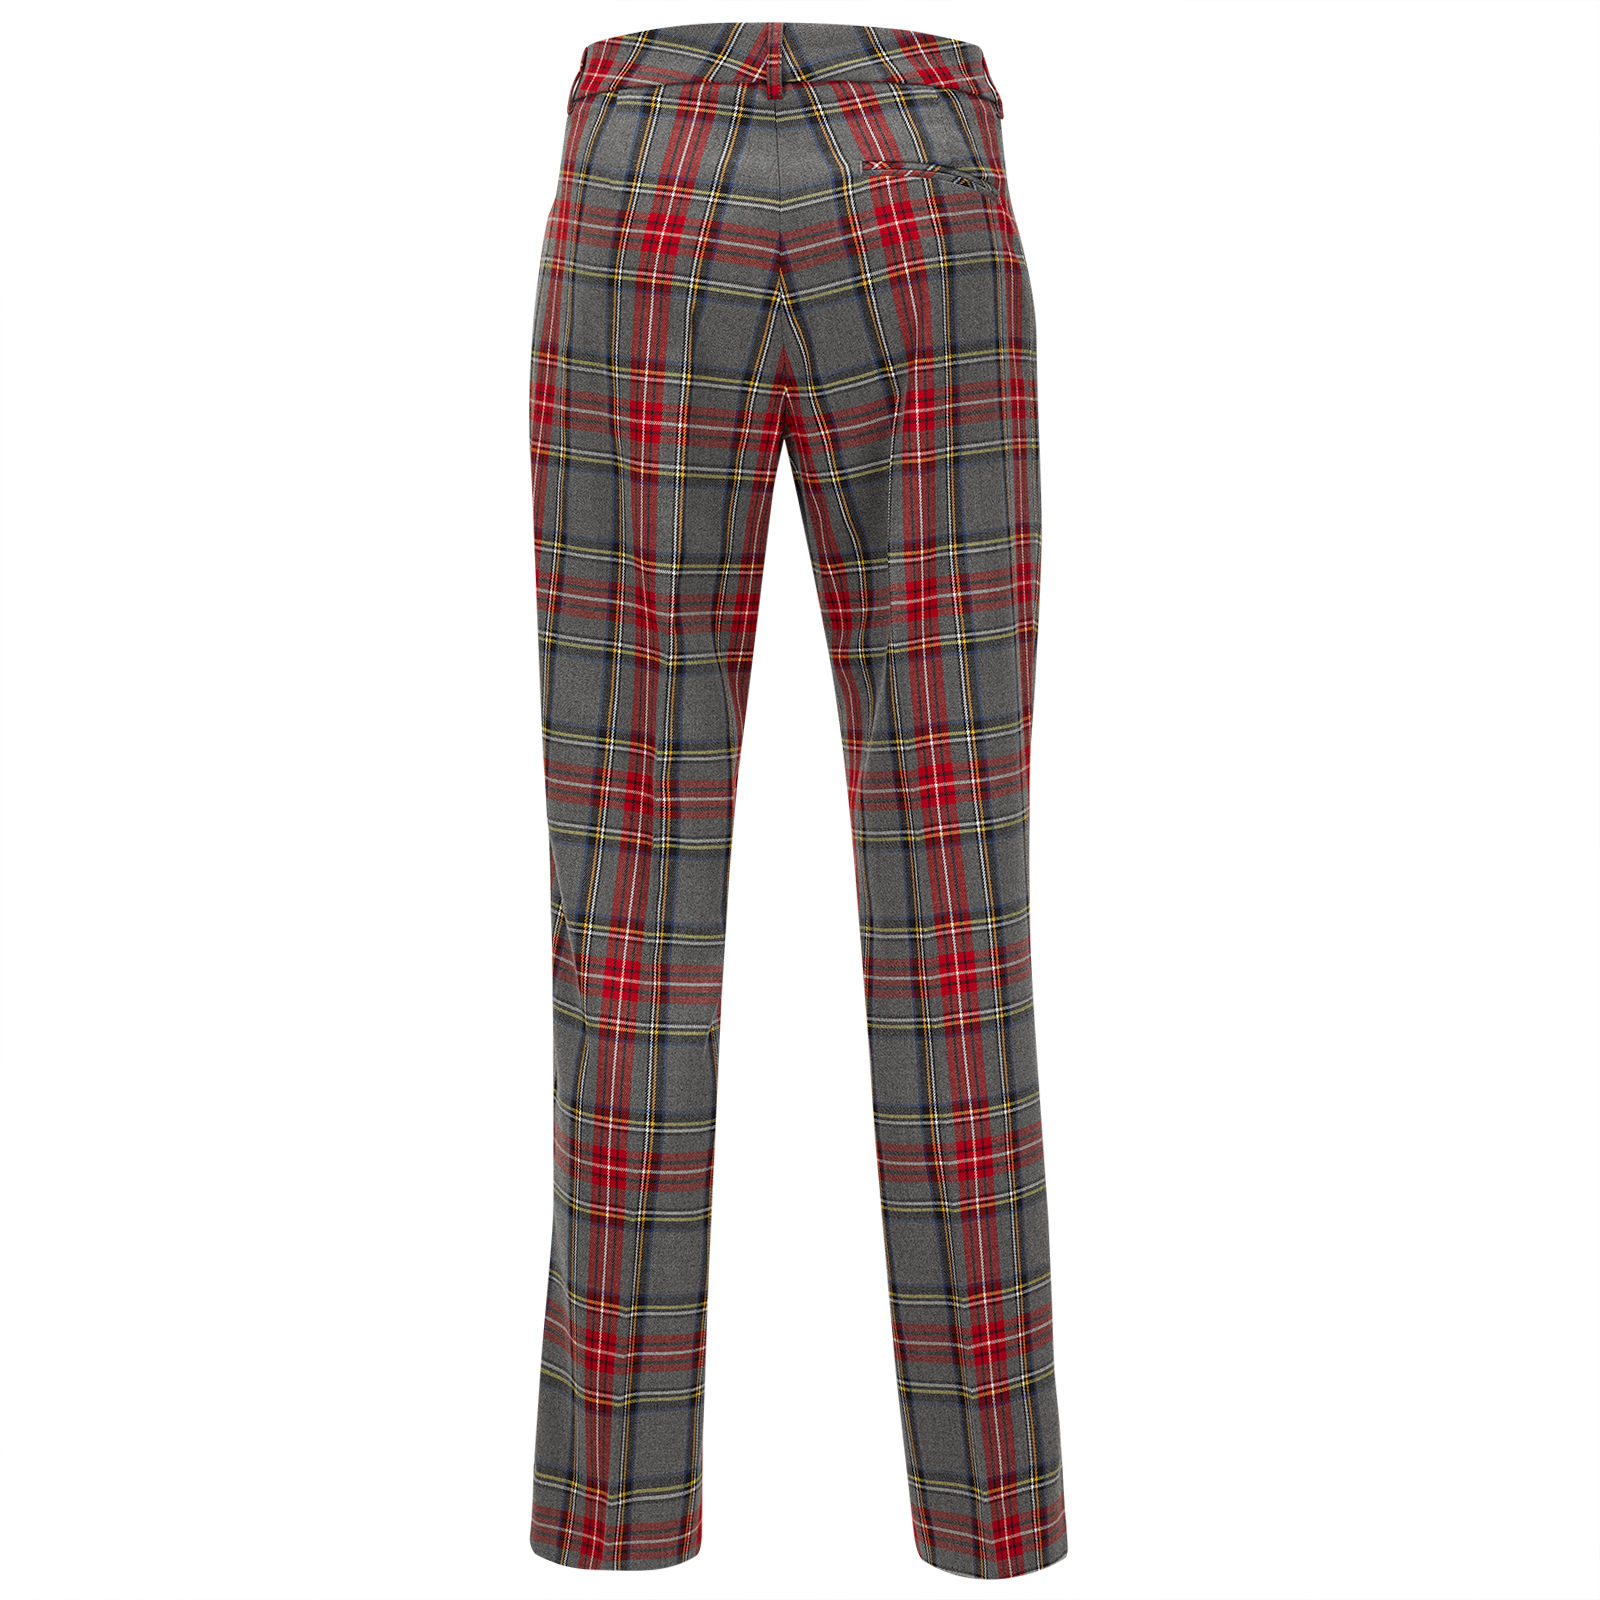 Ladies' checked golf trousers in modern 7/8 length from light stretch material in regular fit